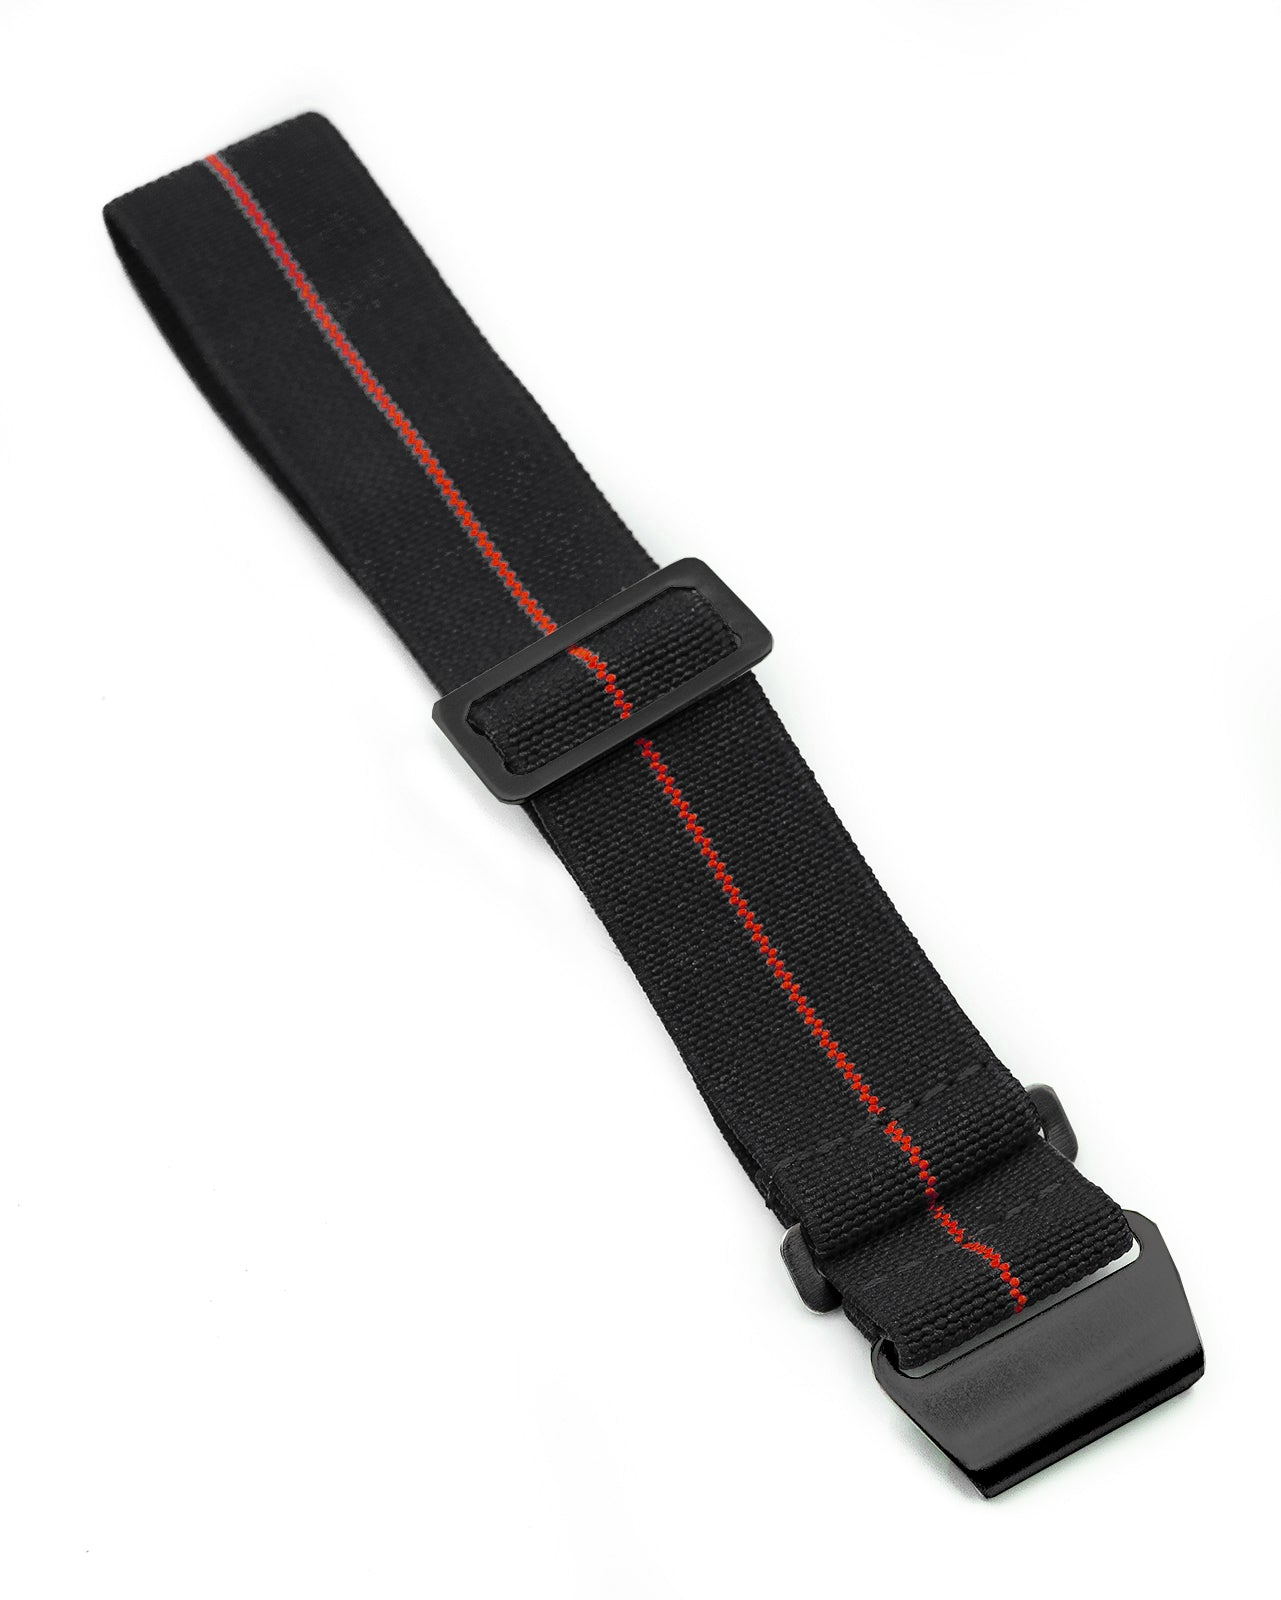 PARA Elastic (Stealth) - Black with Red Centerline